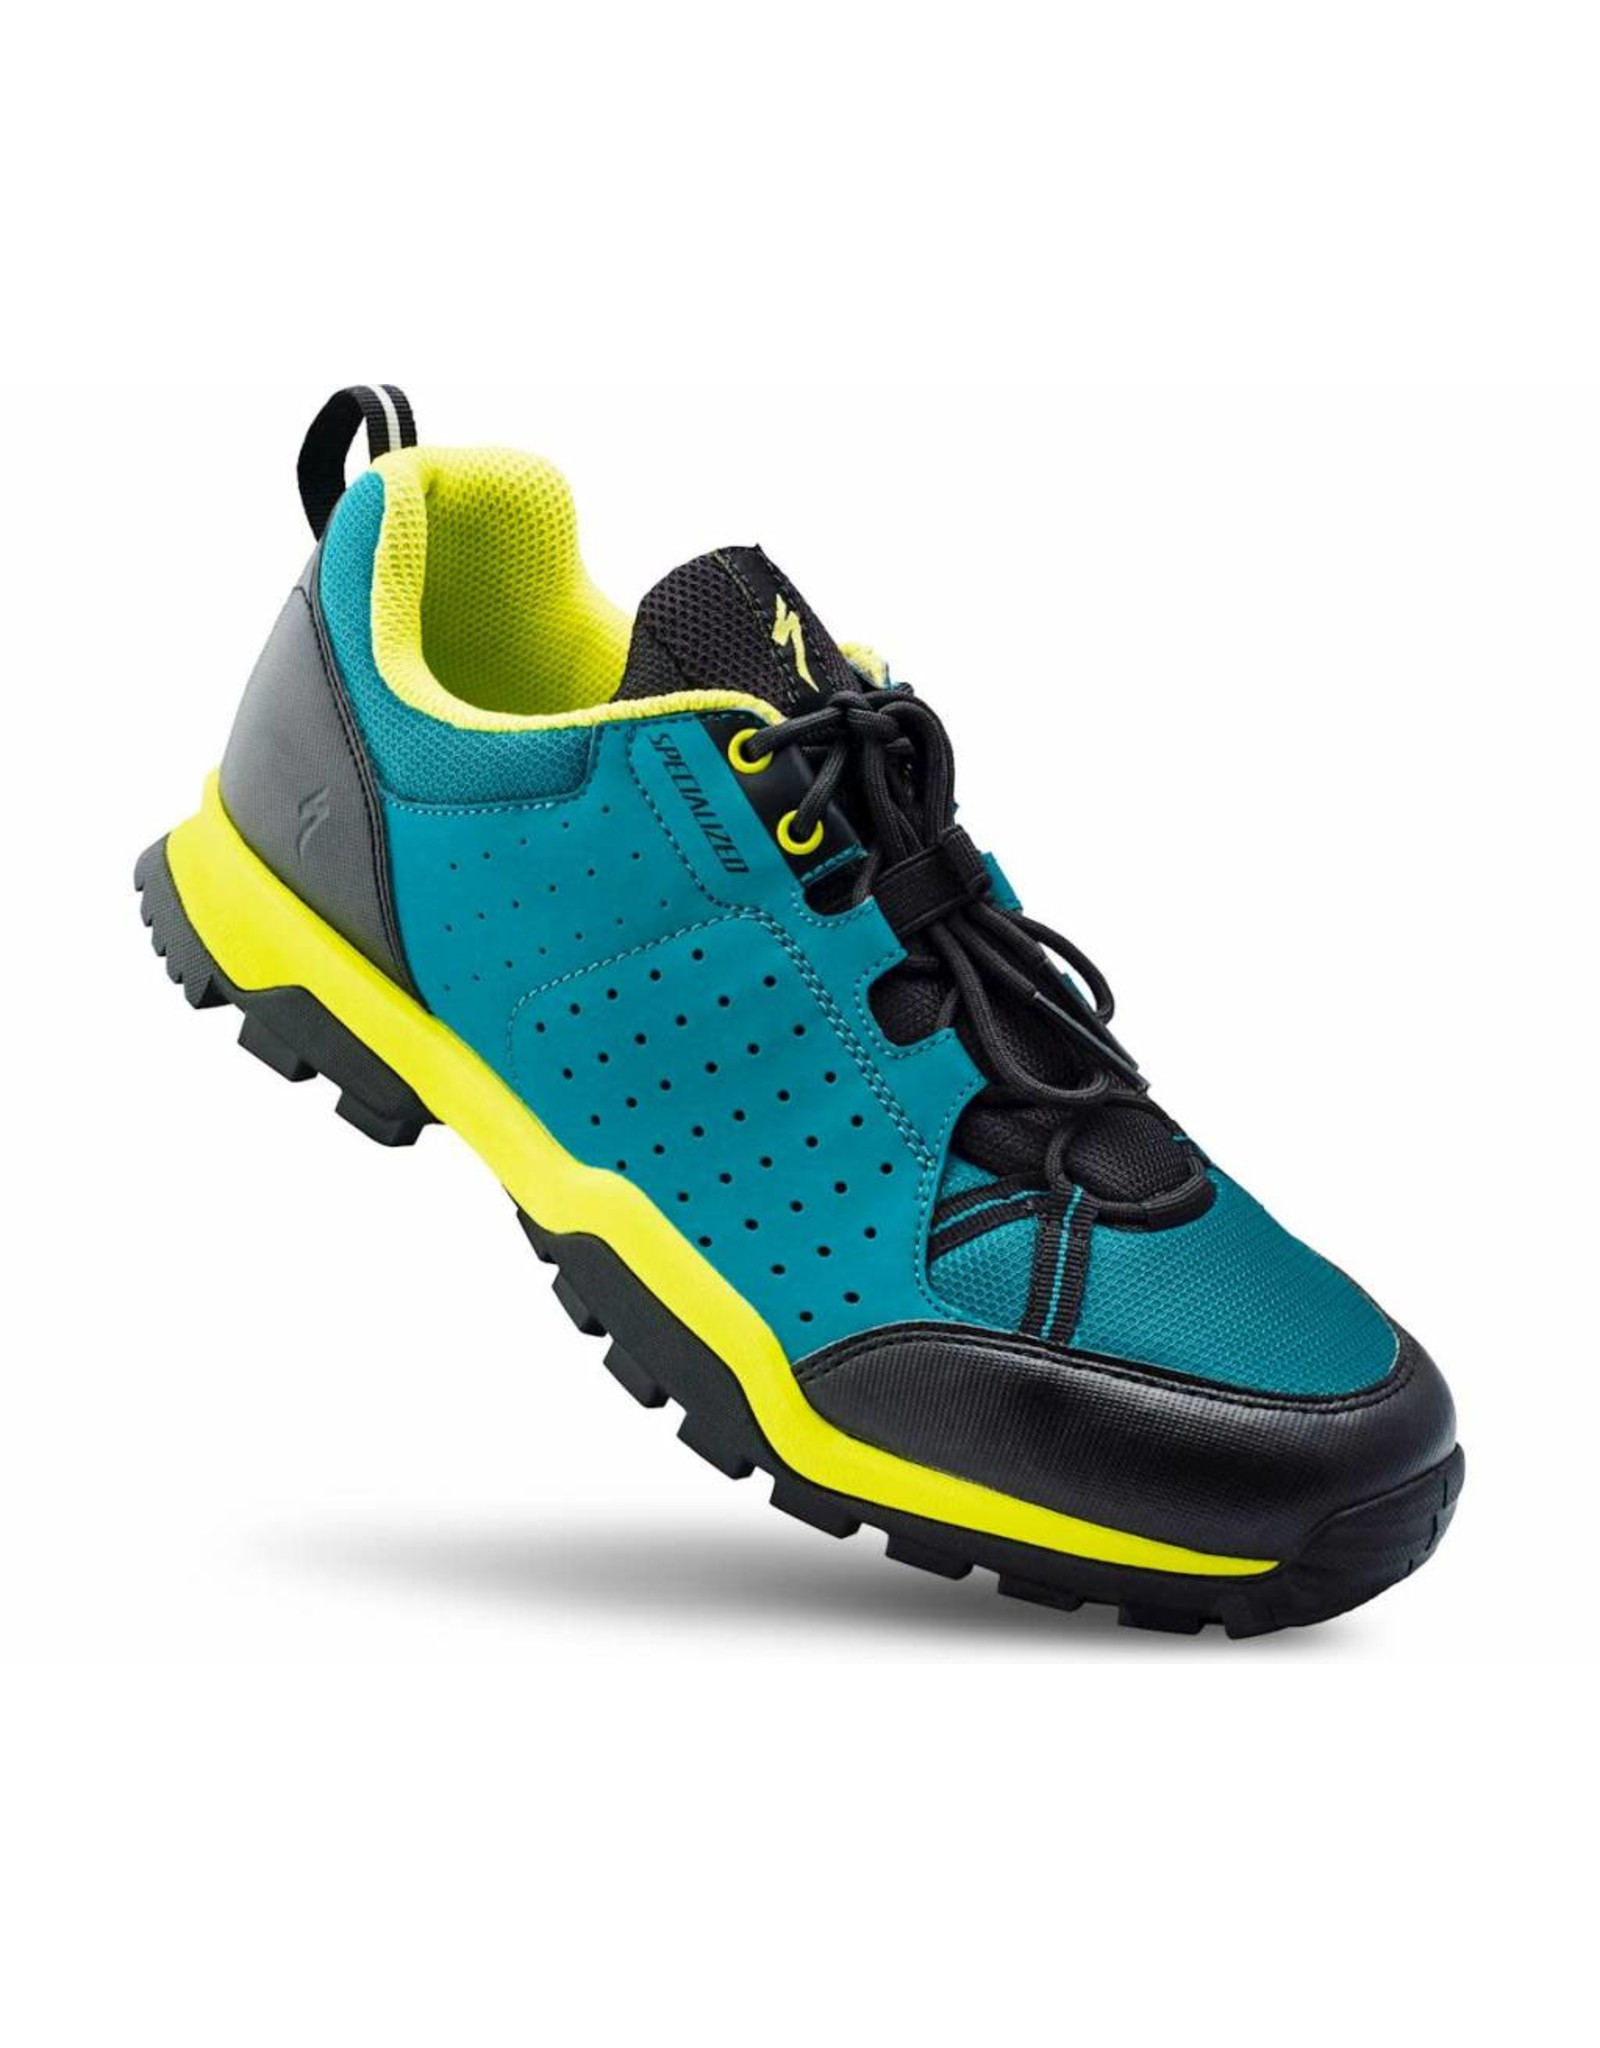 SPECIALIZED Specialized Women's Tahoe MTB Shoes - Light Turquoise/Black - 36